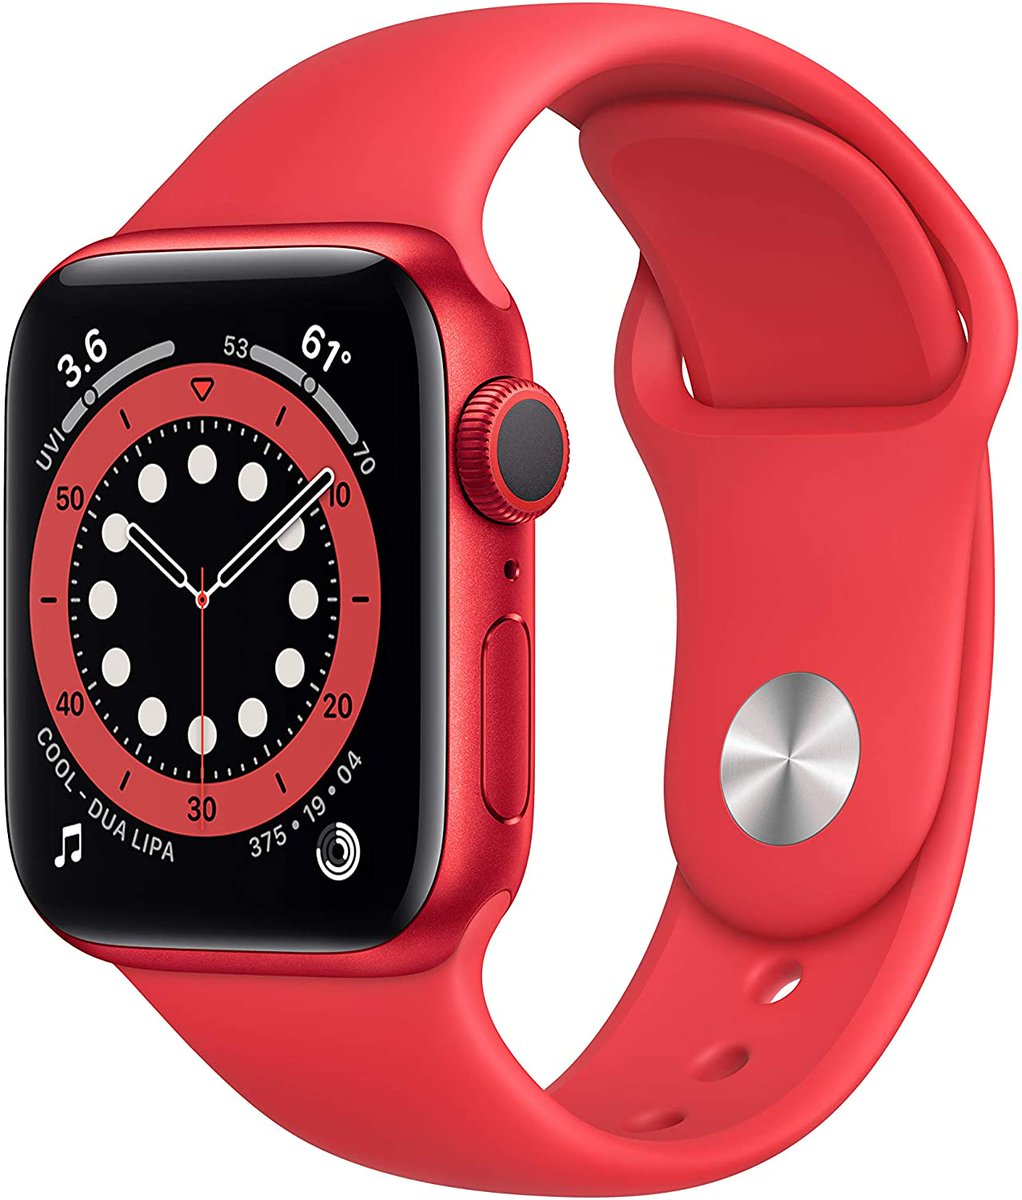 STEAL!  Get a NEW Apple Watch for as low as $169!!  38mm; https://t.co/X4RuU1ZUQa 42mm for $199; https://t.co/RRwkYHiGVB  Series 6, 40mm, $339; https://t.co/V0o1EdCQaS https://t.co/5YLJn2FoKn